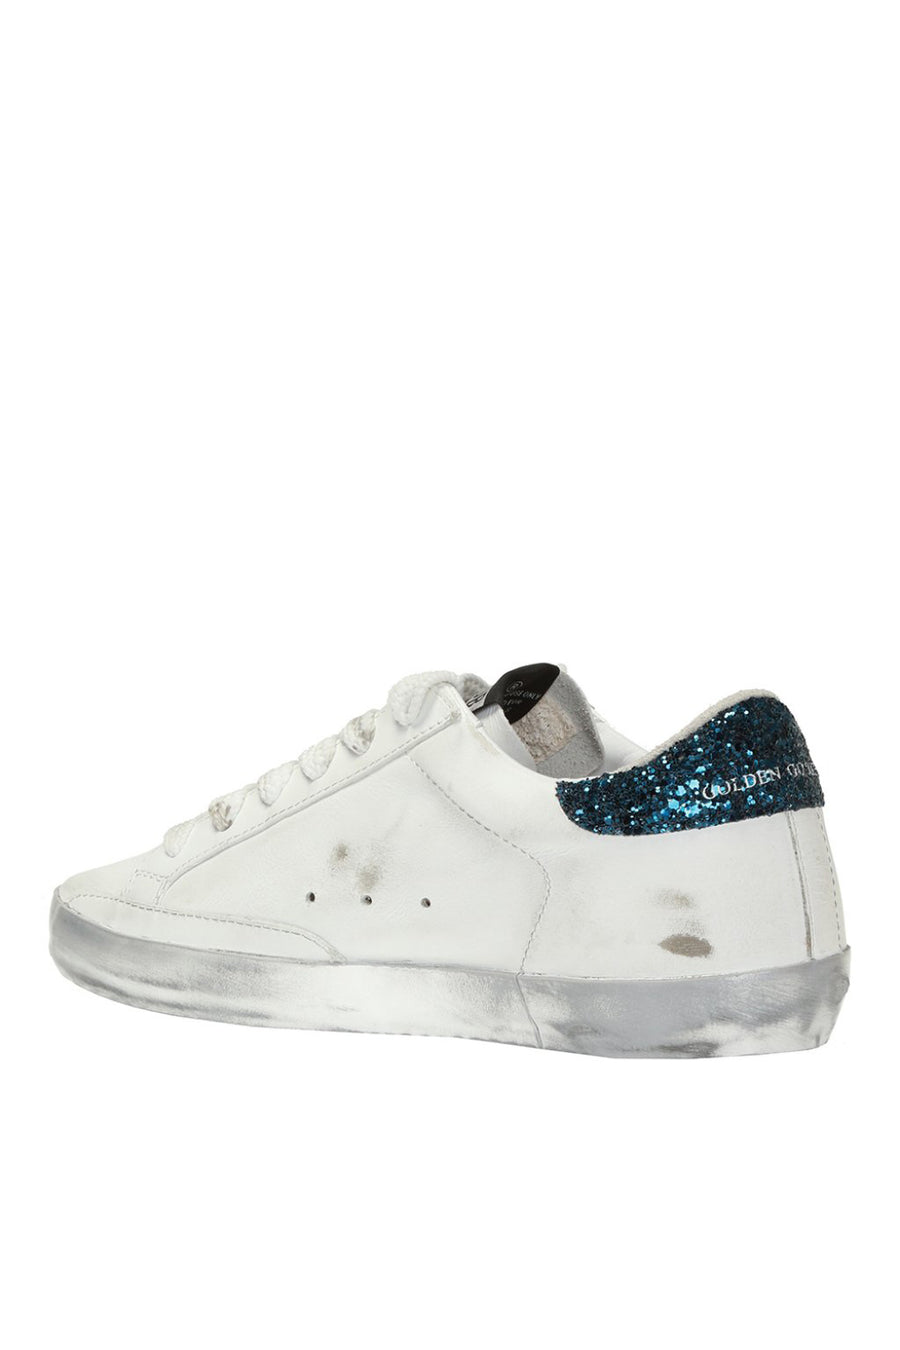 Superstar - White Leather Sparkle Yellow Star